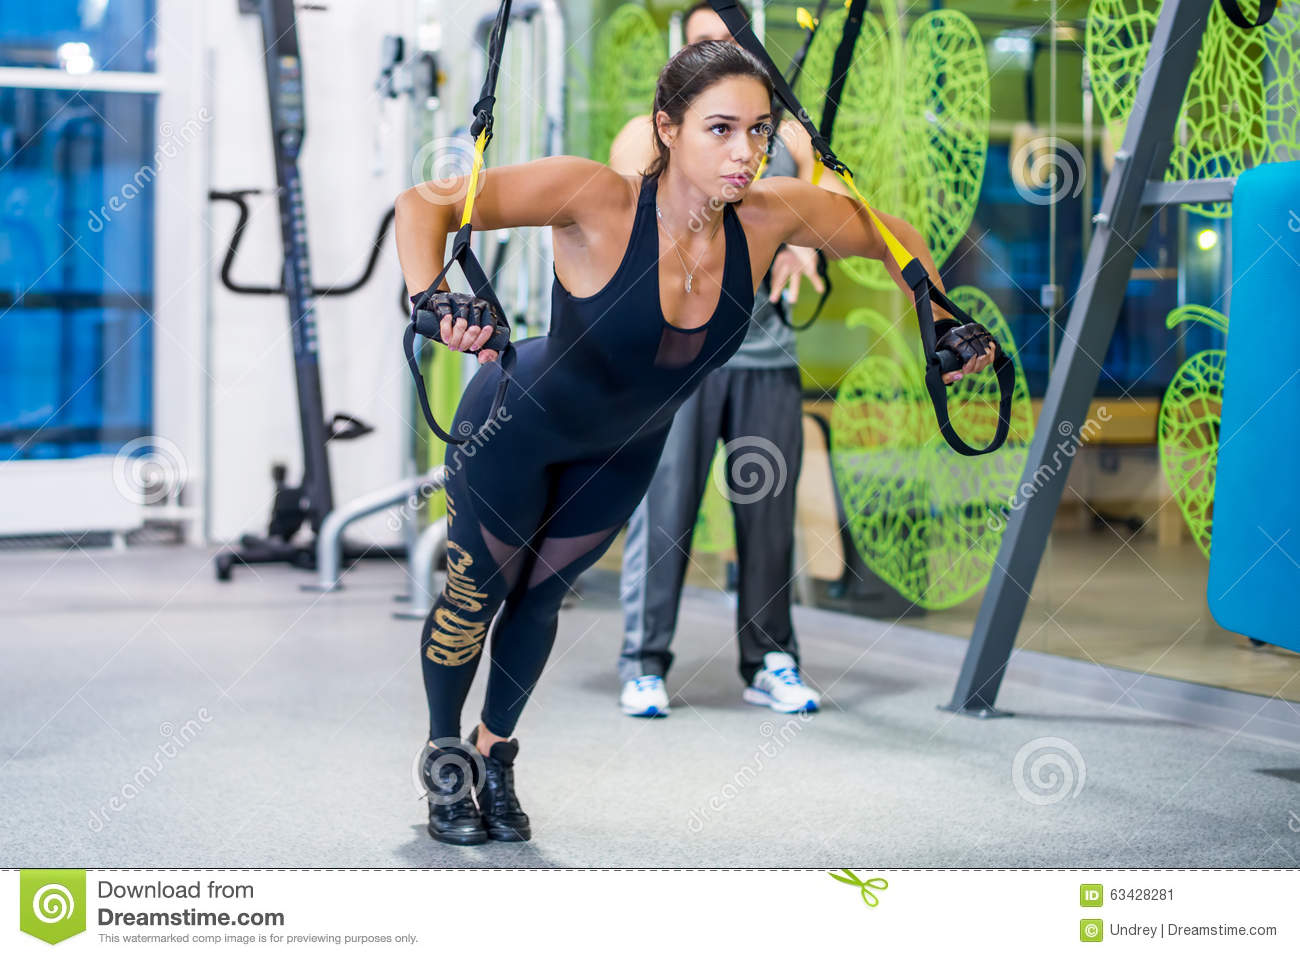 Sexy women doing trx workout